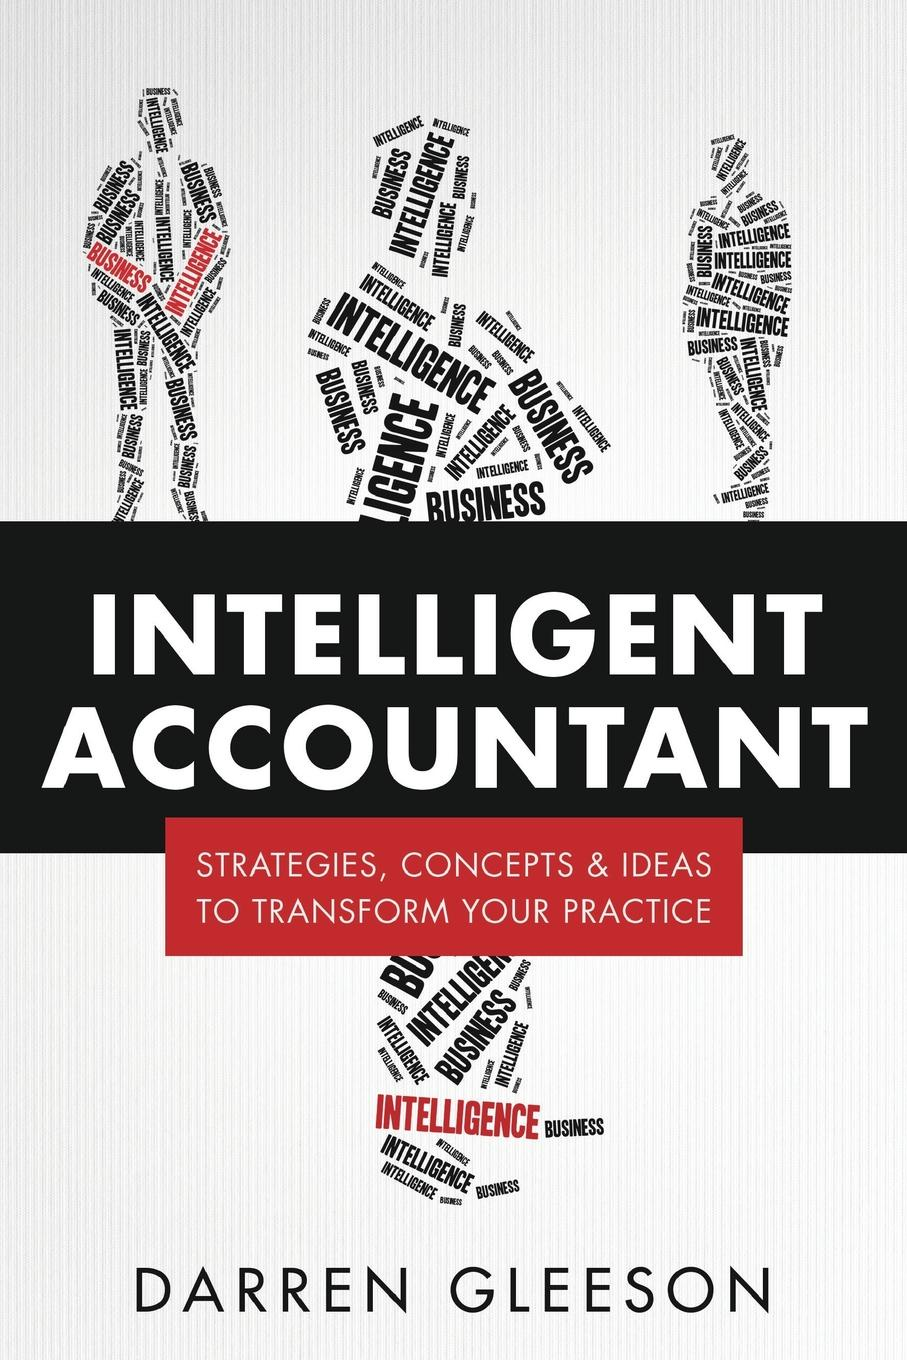 Darren Gleeson Intelligent Accountant. Strategies, concepts & ideas to transform your practice edward merrow w industrial megaprojects concepts strategies and practices for success